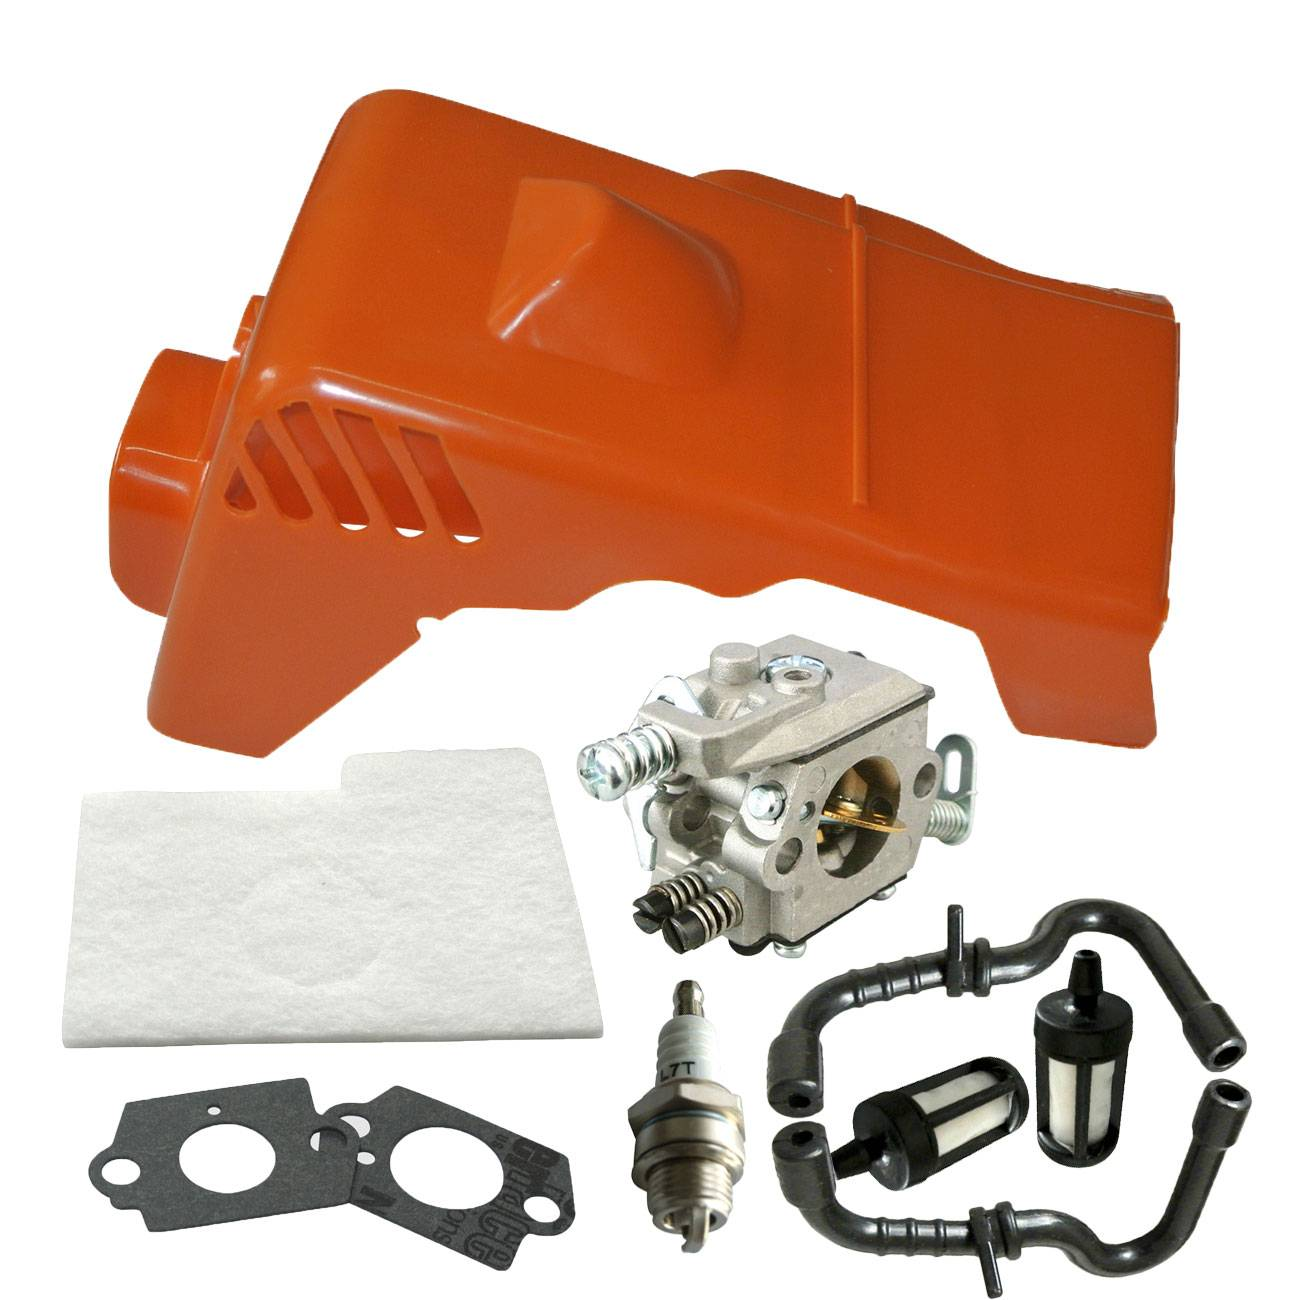 Top Cylinder Cover For Stihl 017 018 MS180 MS170 Chainsaw